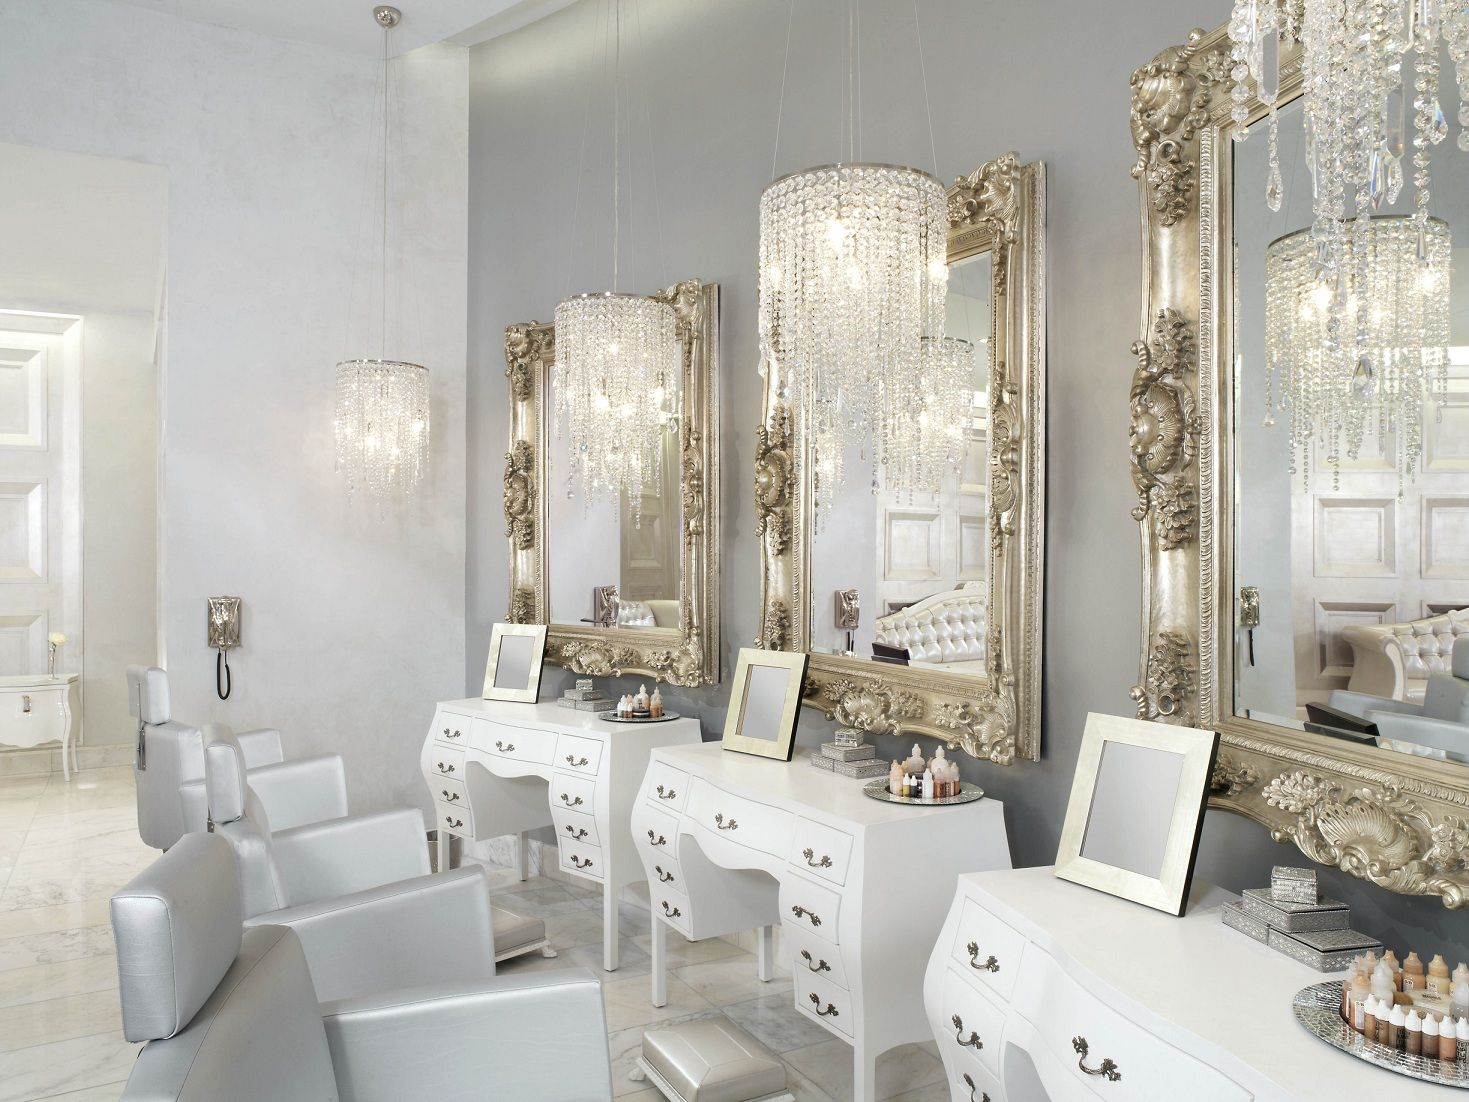 High Quality Color Salon By Michael Boychuck Mixes Classic Hollywood Glamour With Modern  Design. Color Salon By Michael Boychuck Whether Sipping Champagne In The  Lather ...